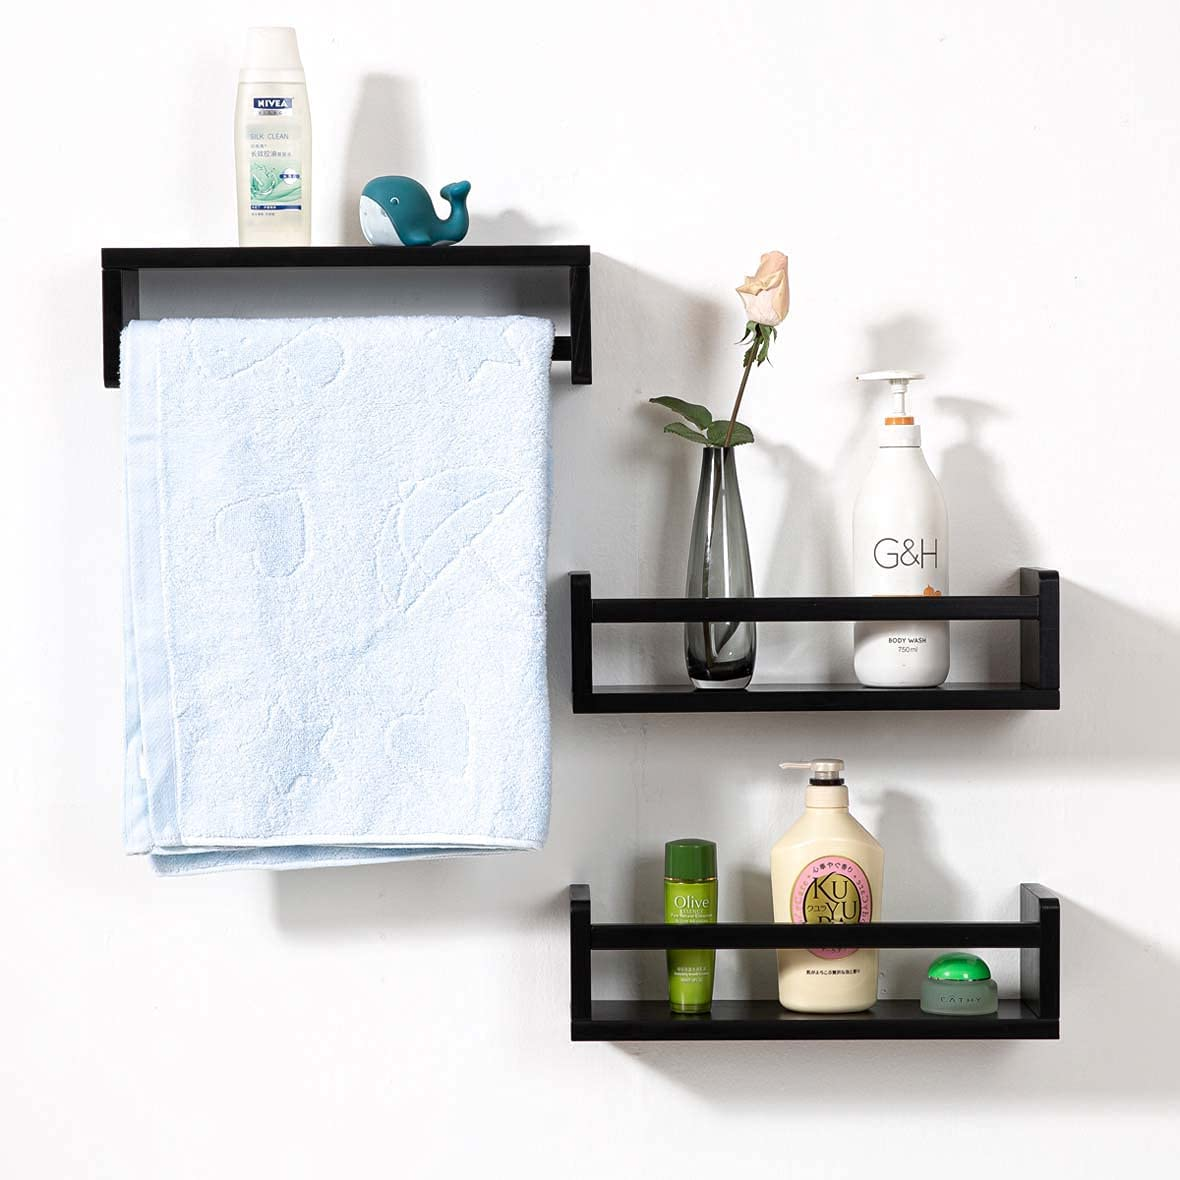 AUYKBVK 16-inch San Jose Mall Wall-Mounted Shelf Storage Used can be Rack Fashionable fo